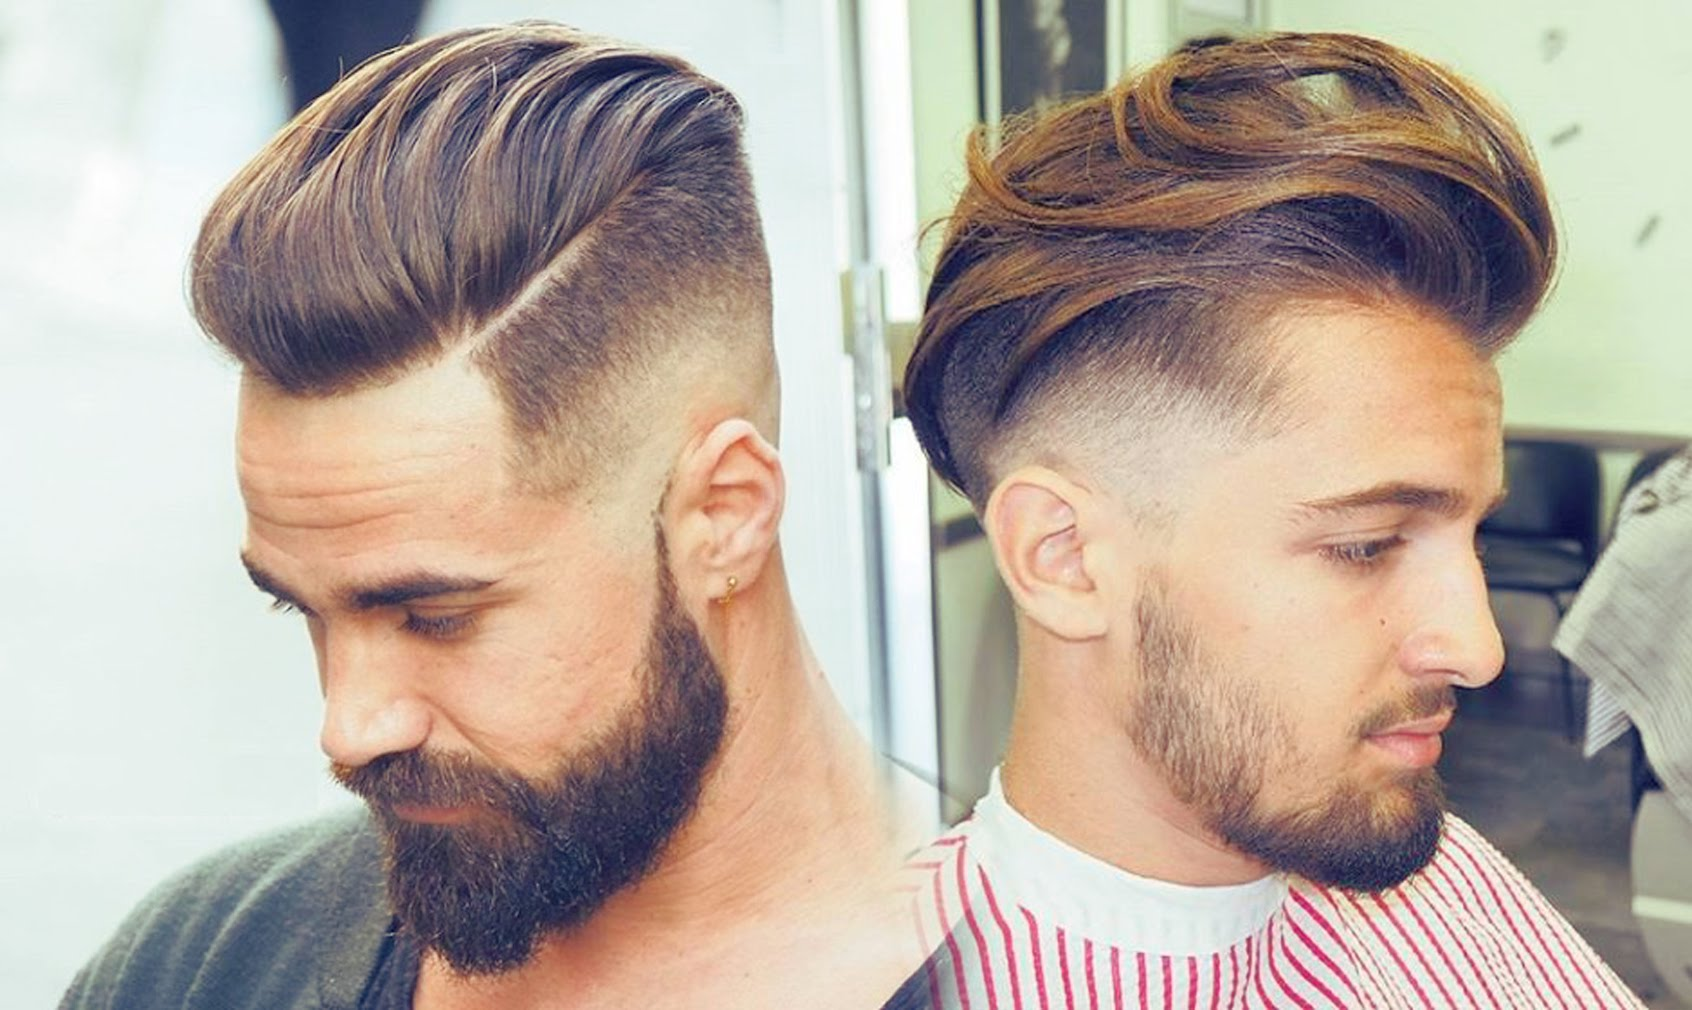 25 Great Summer Hairstyle Ideas For Men Ohtopten